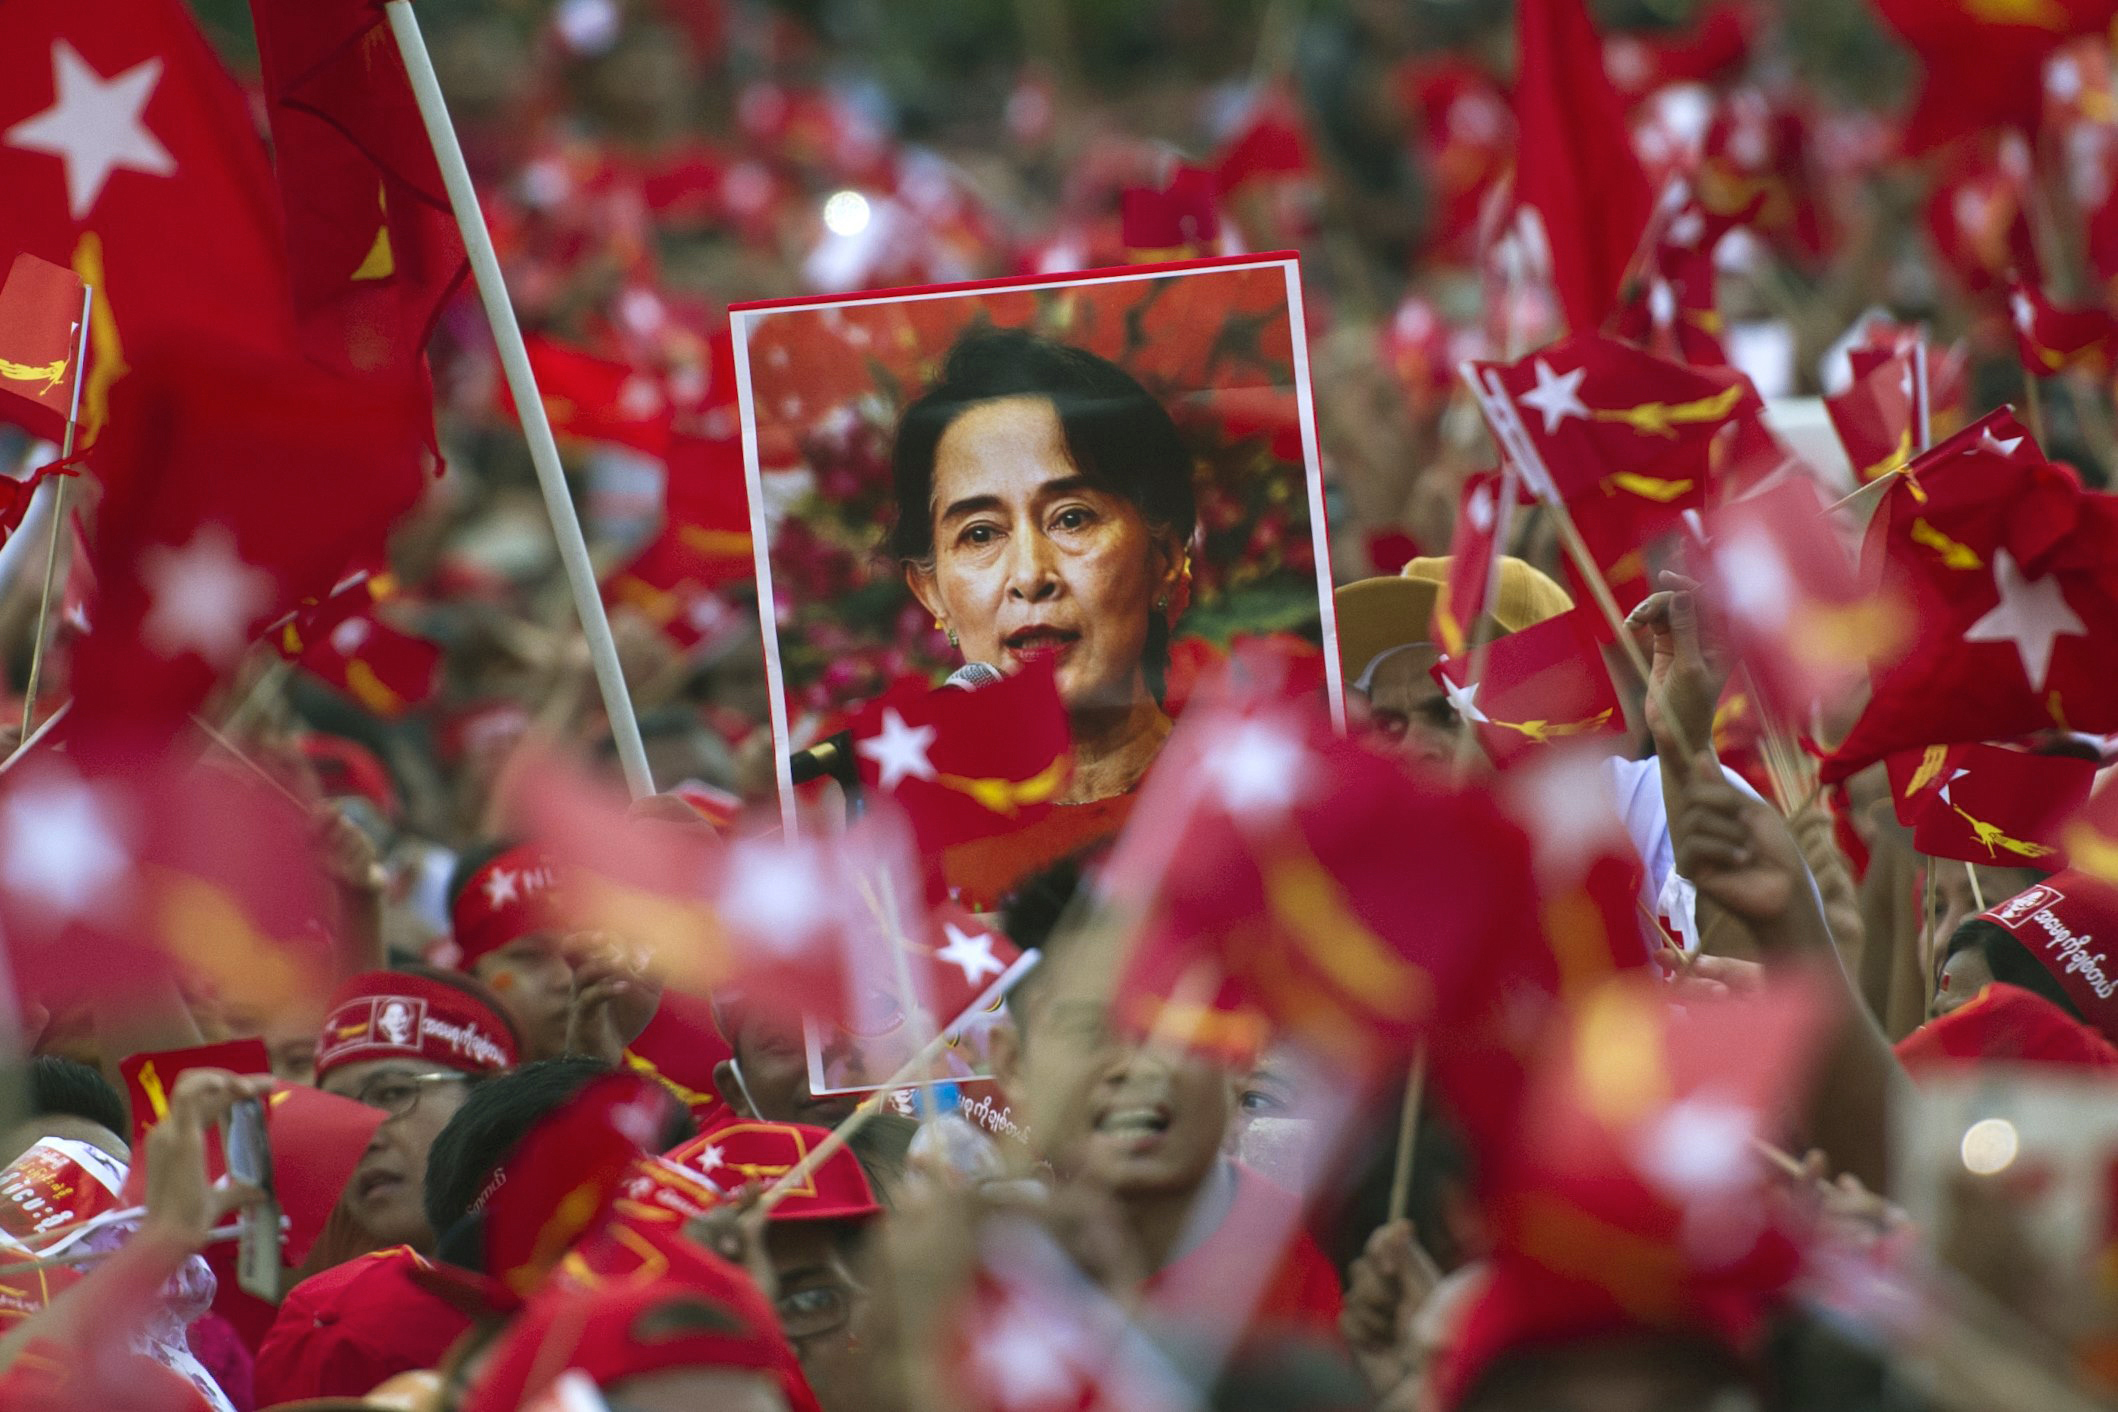 Supporters of opposition leader Aung San Suu Kyi hold posters bearing her image as they listen during a campaign speech in Yangon, Myanmar, on Nov. 1, 2015